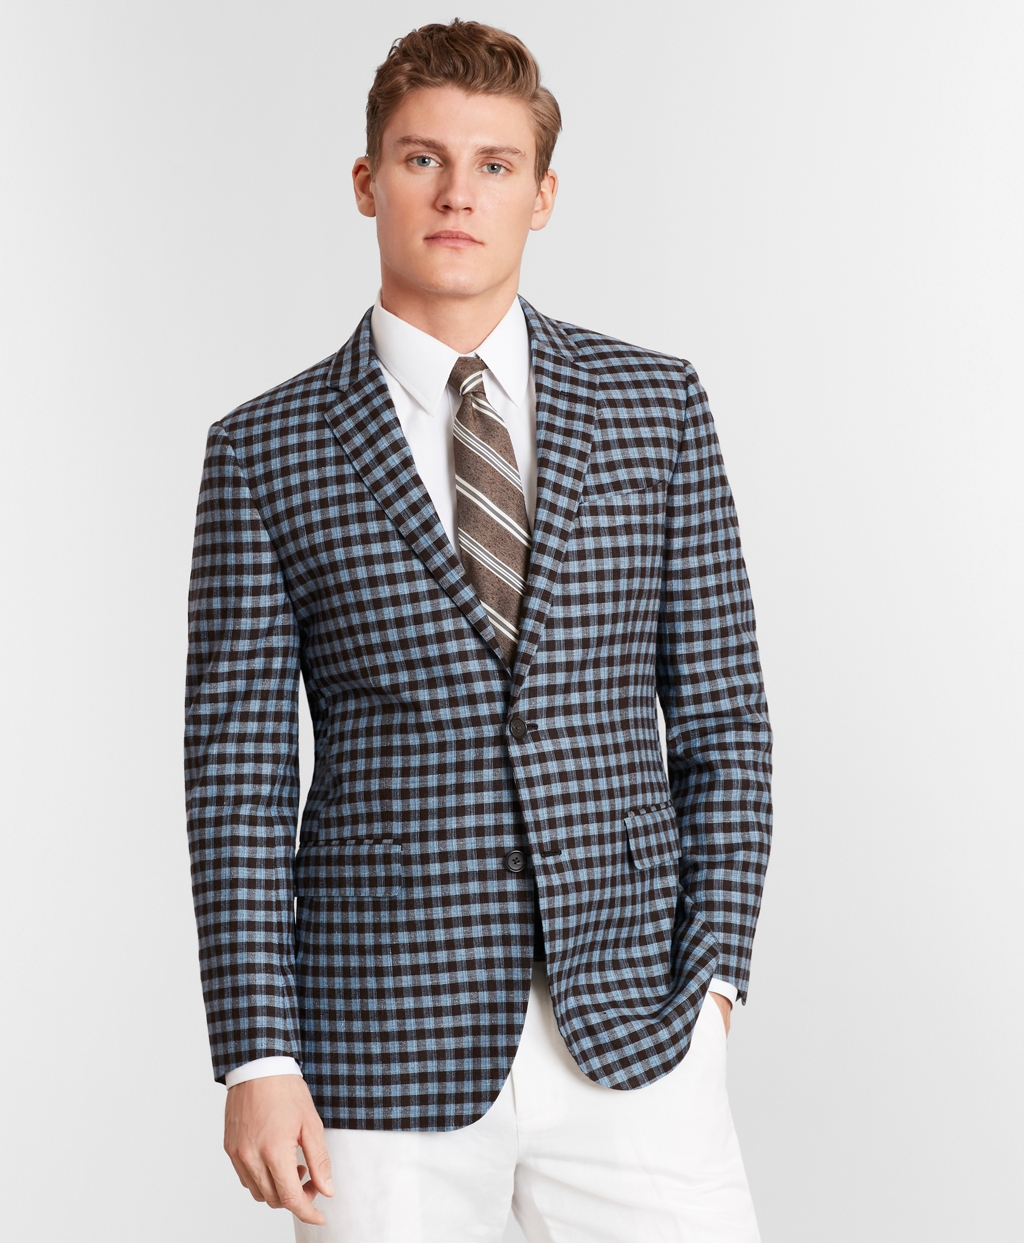 Men's Vintage Style Suits, Classic Suits Brooks Brothers Mens Milano Fit Silk And Linen Check Sport Coat $149.40 AT vintagedancer.com